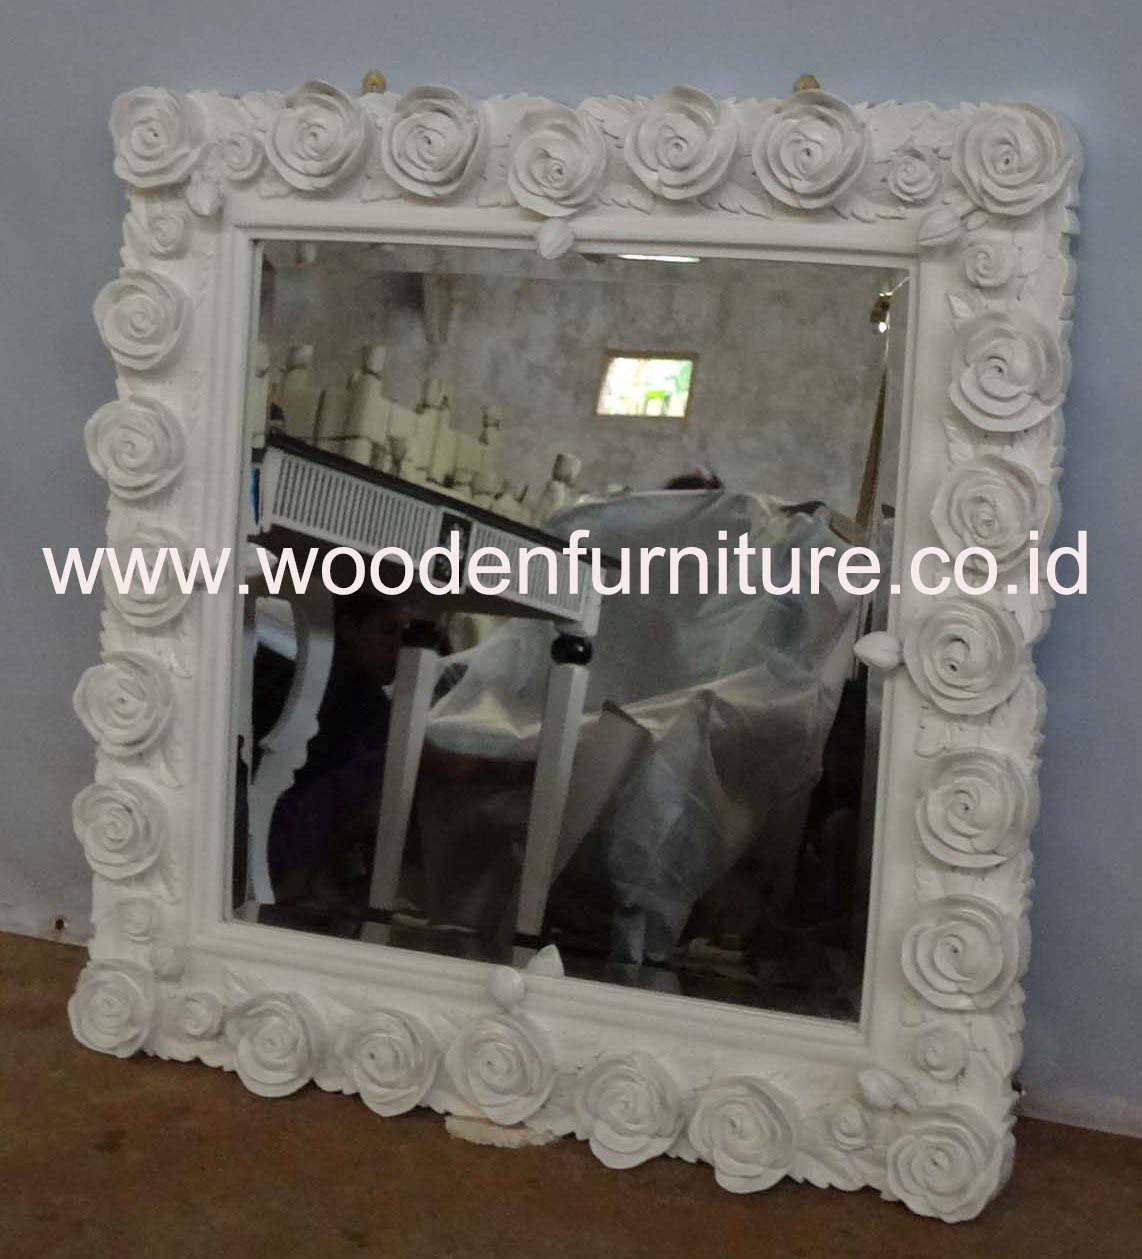 Antique Square Rose Frame French Style Mirror Classic Wooden Accessories Vintage Mirror European Style Home Furniture